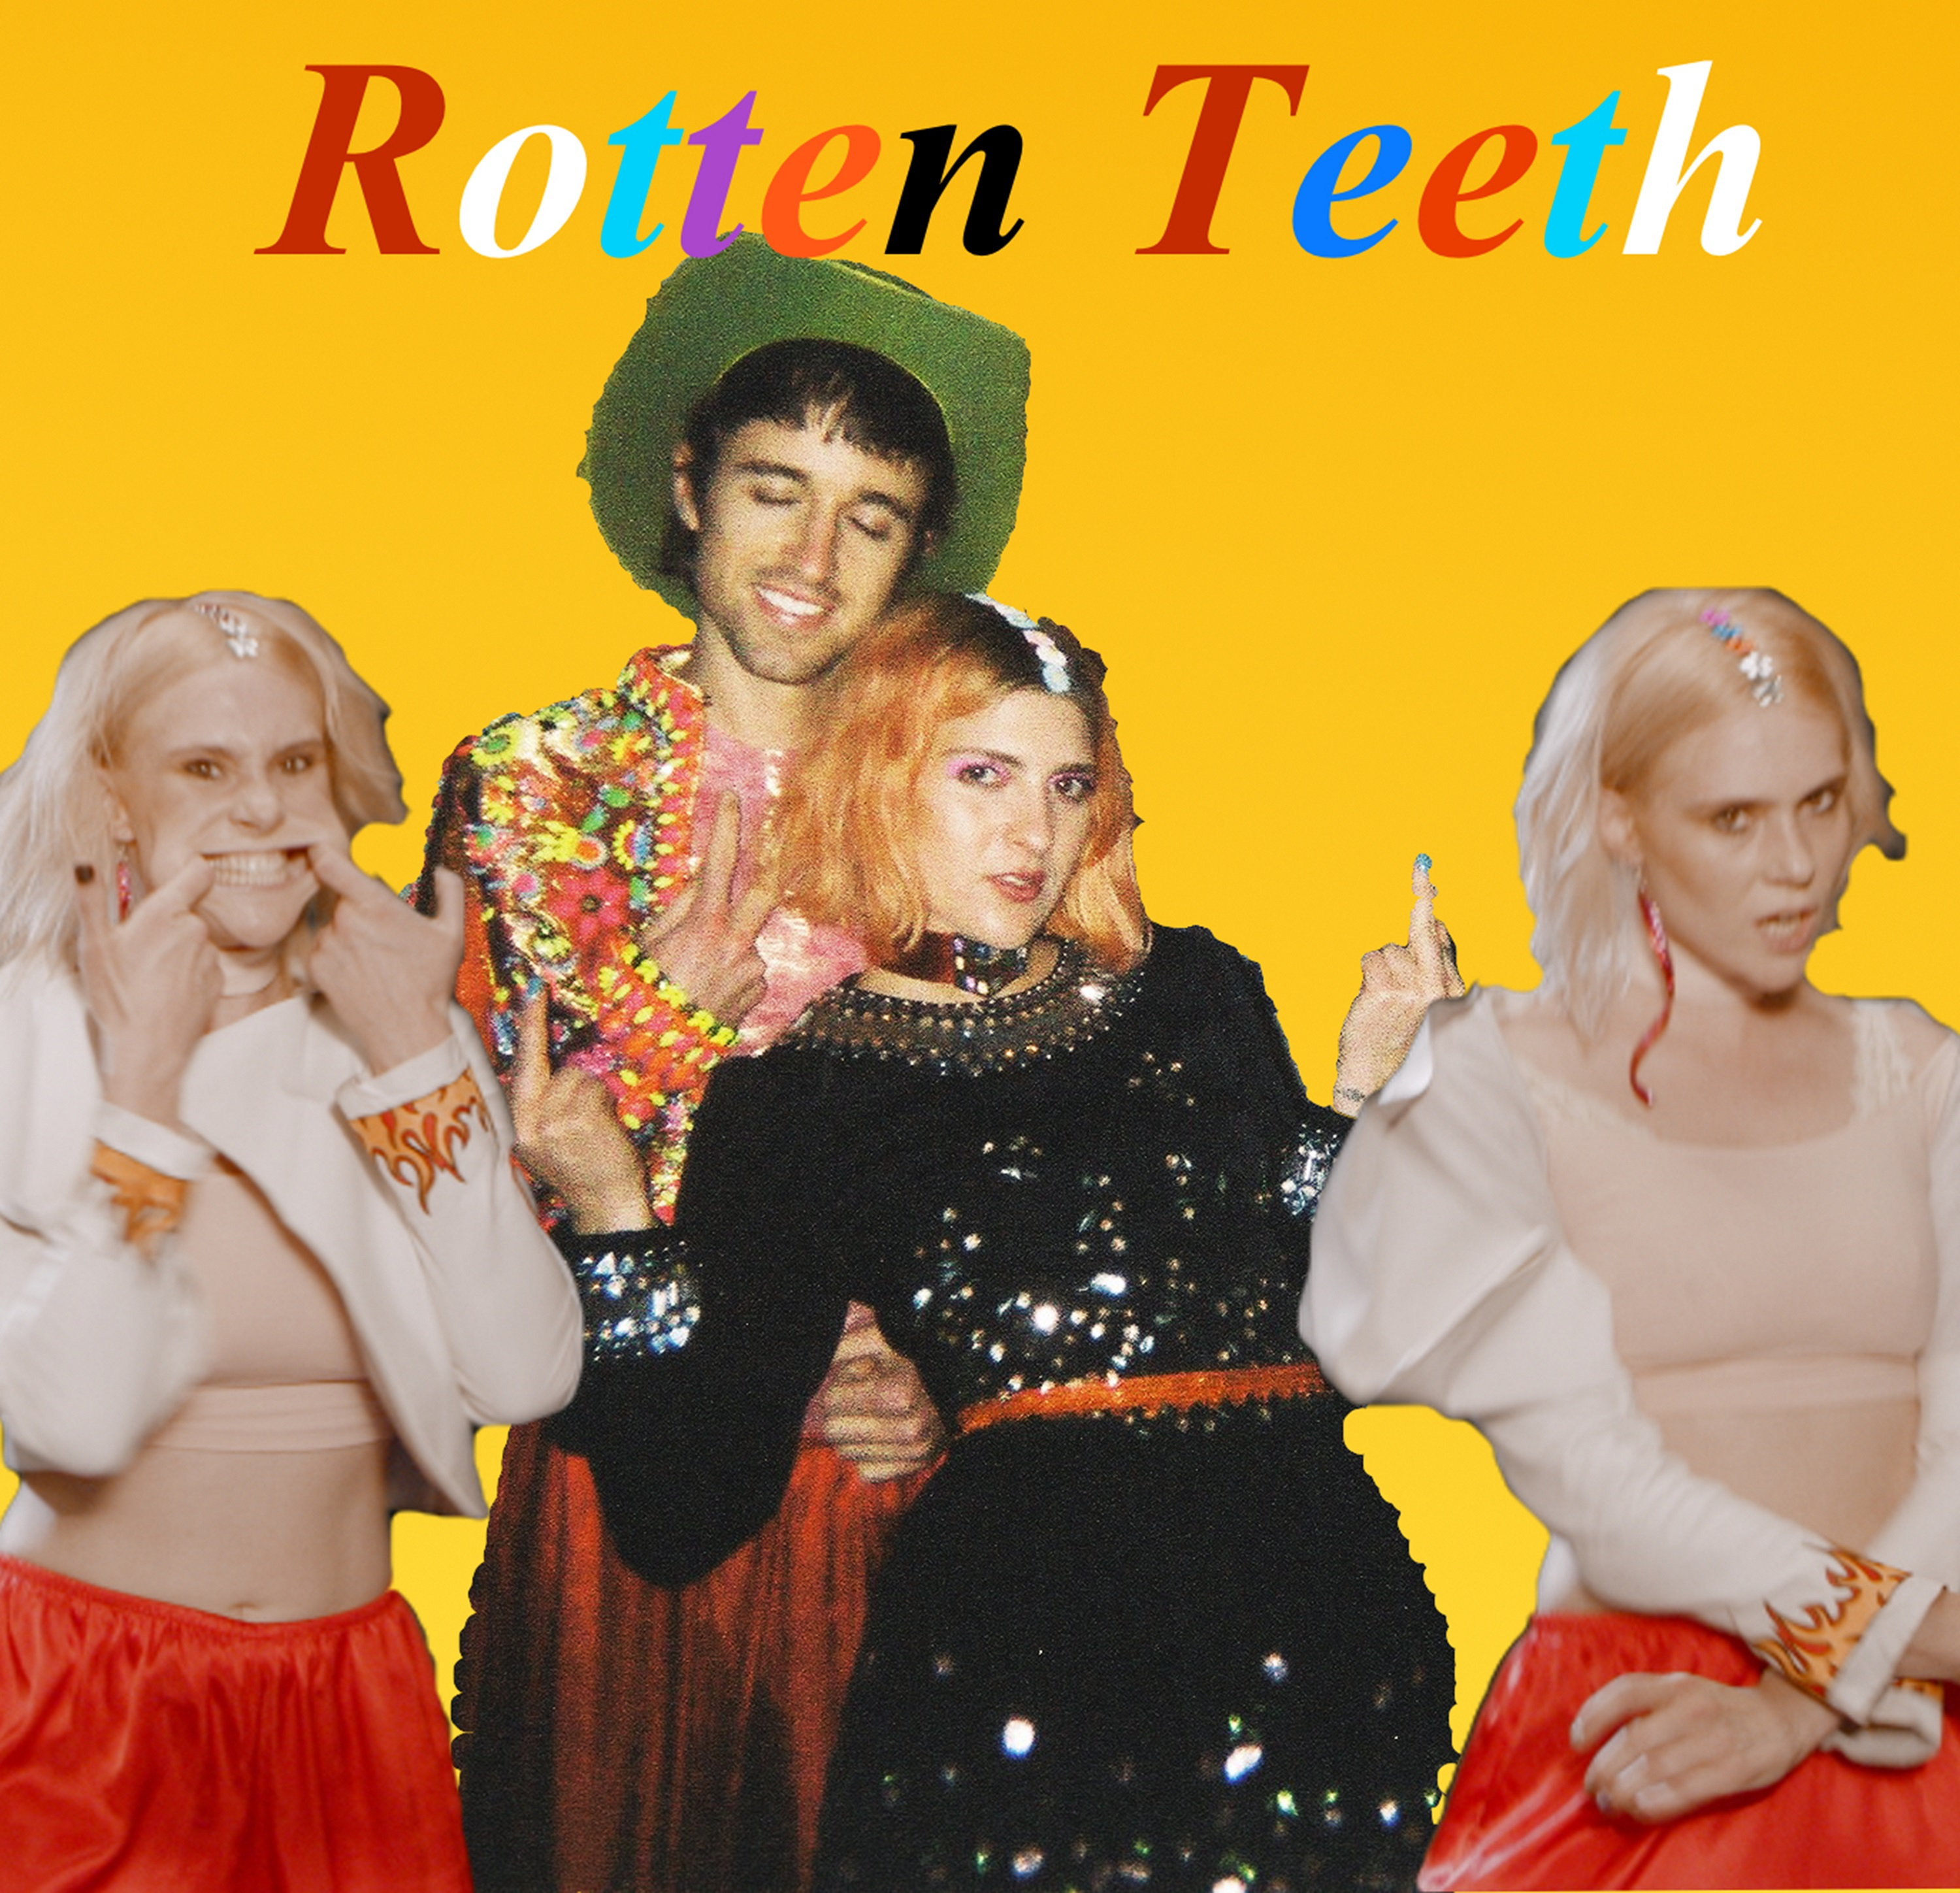 HolyChild - Rotten teeth